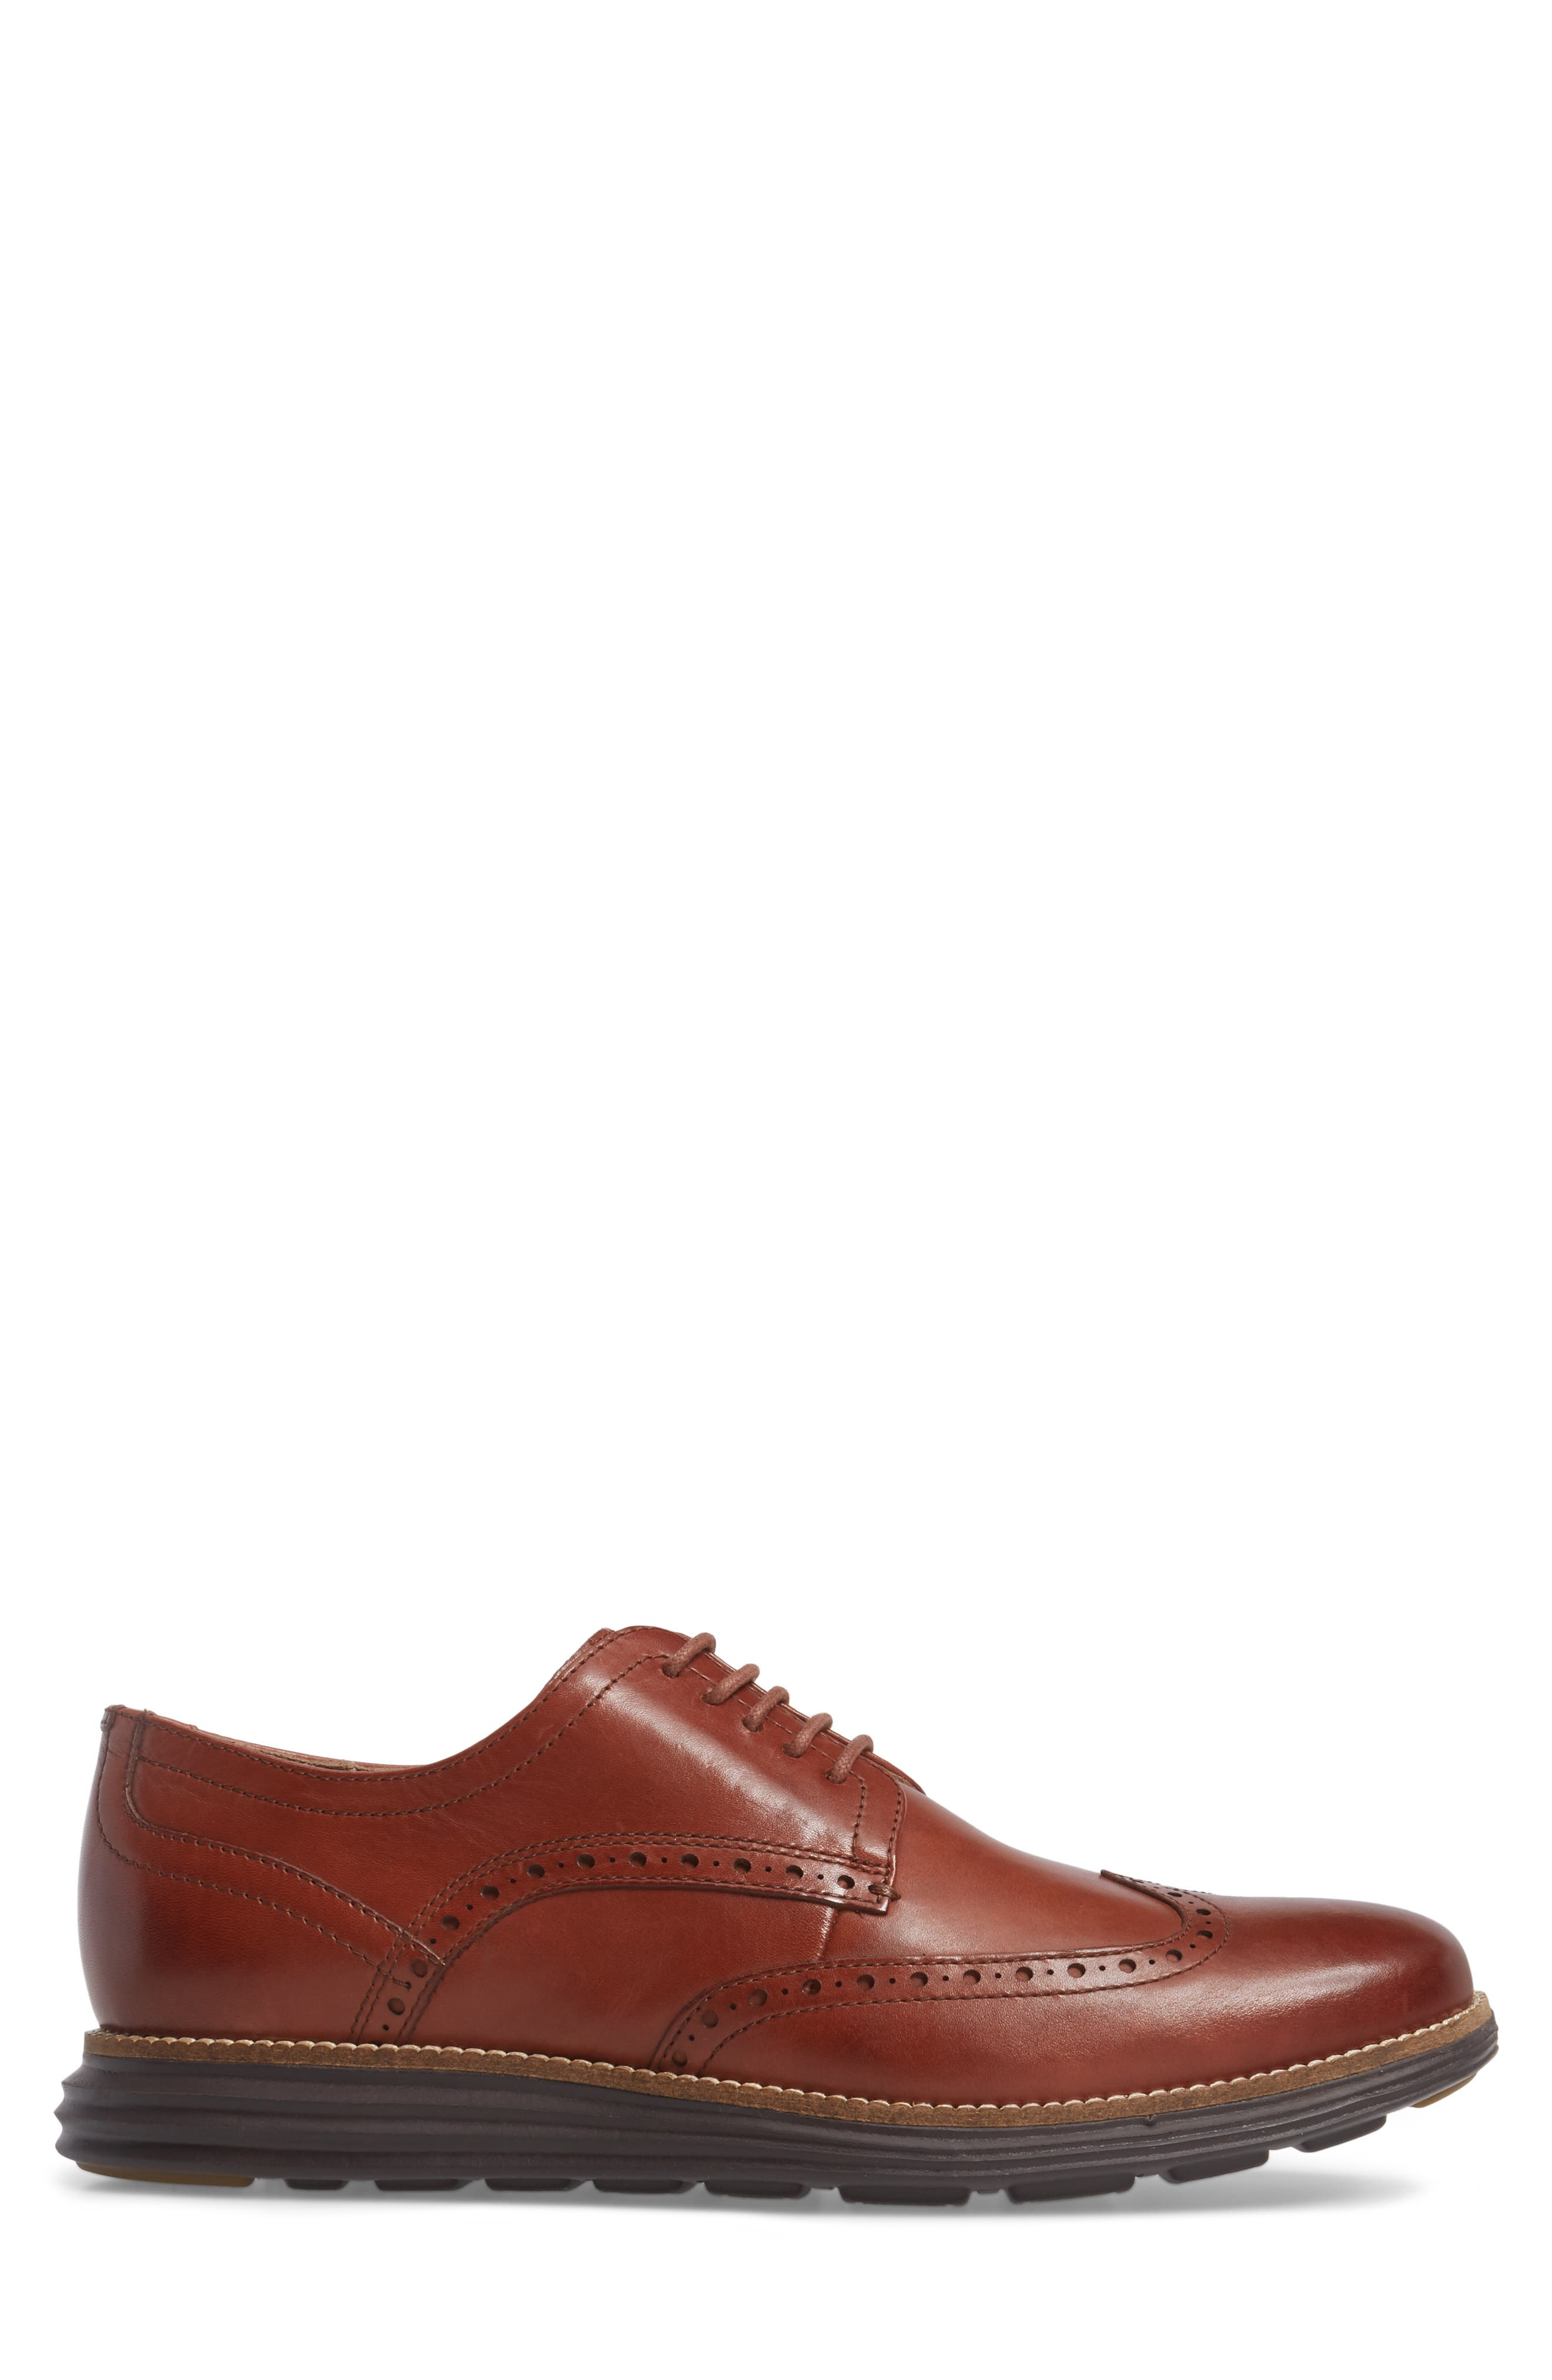 COLE HAAN, Original Grand Wingtip, Alternate thumbnail 3, color, WOODBURY/ JAVA LEATHER